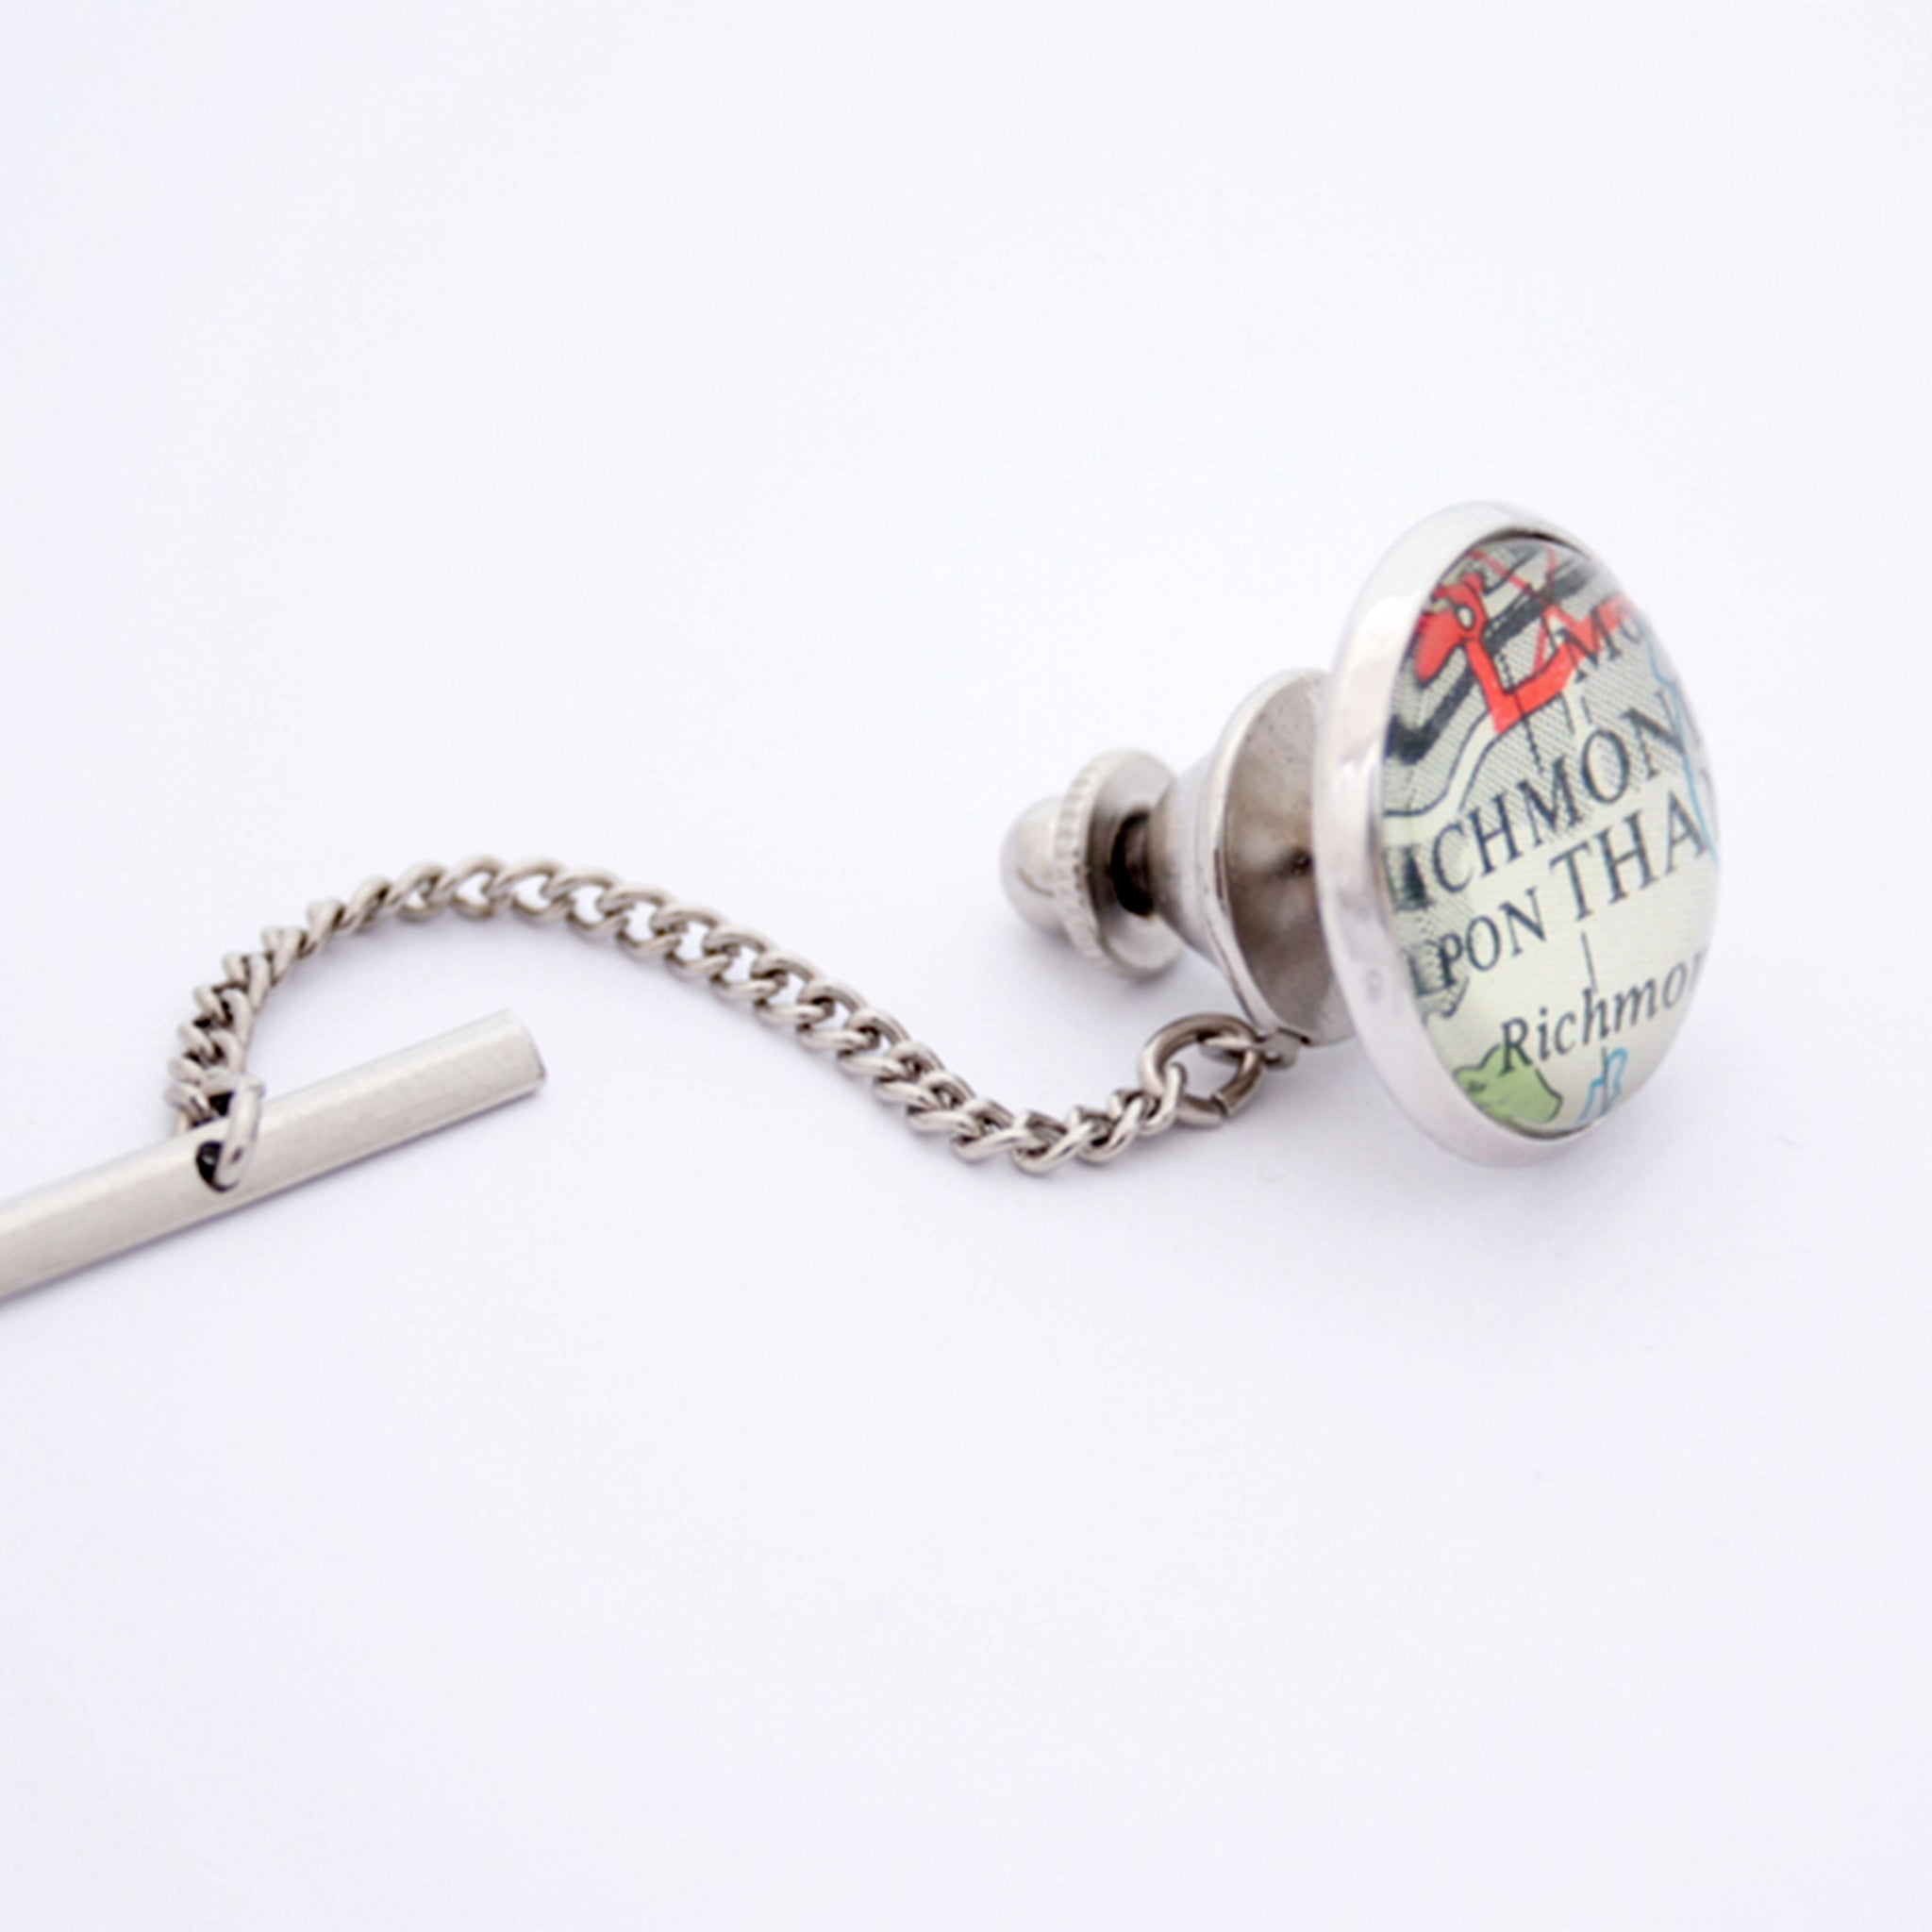 Personalised tie tack in silver color with custom map location